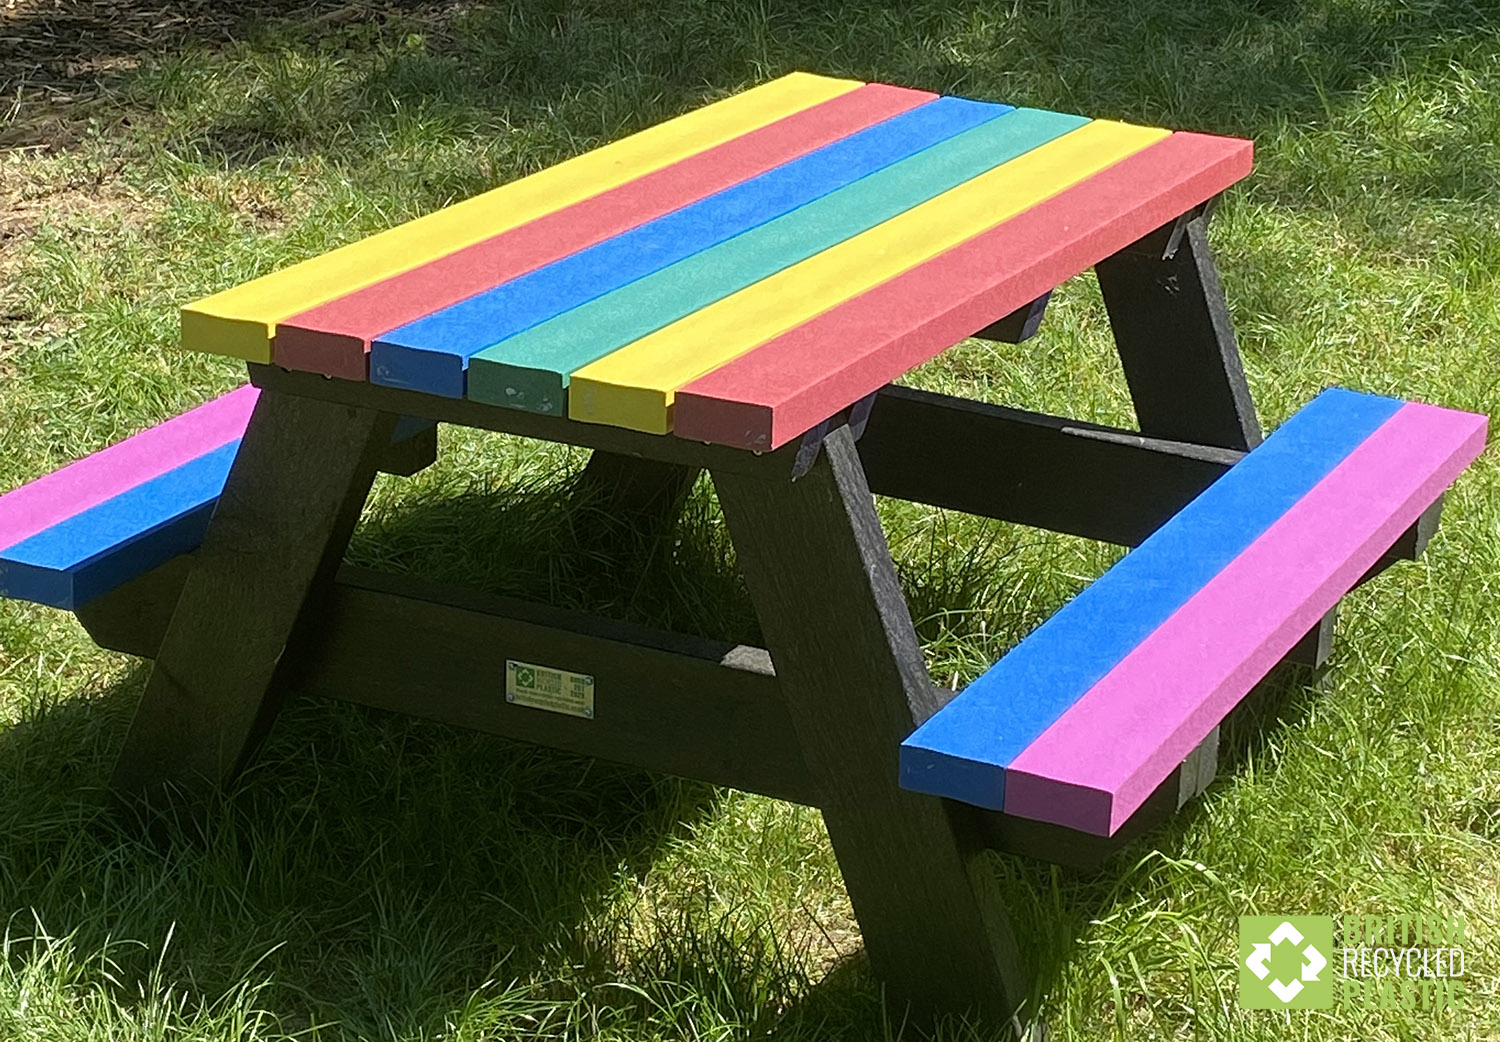 The Holmfirth junior picnic table